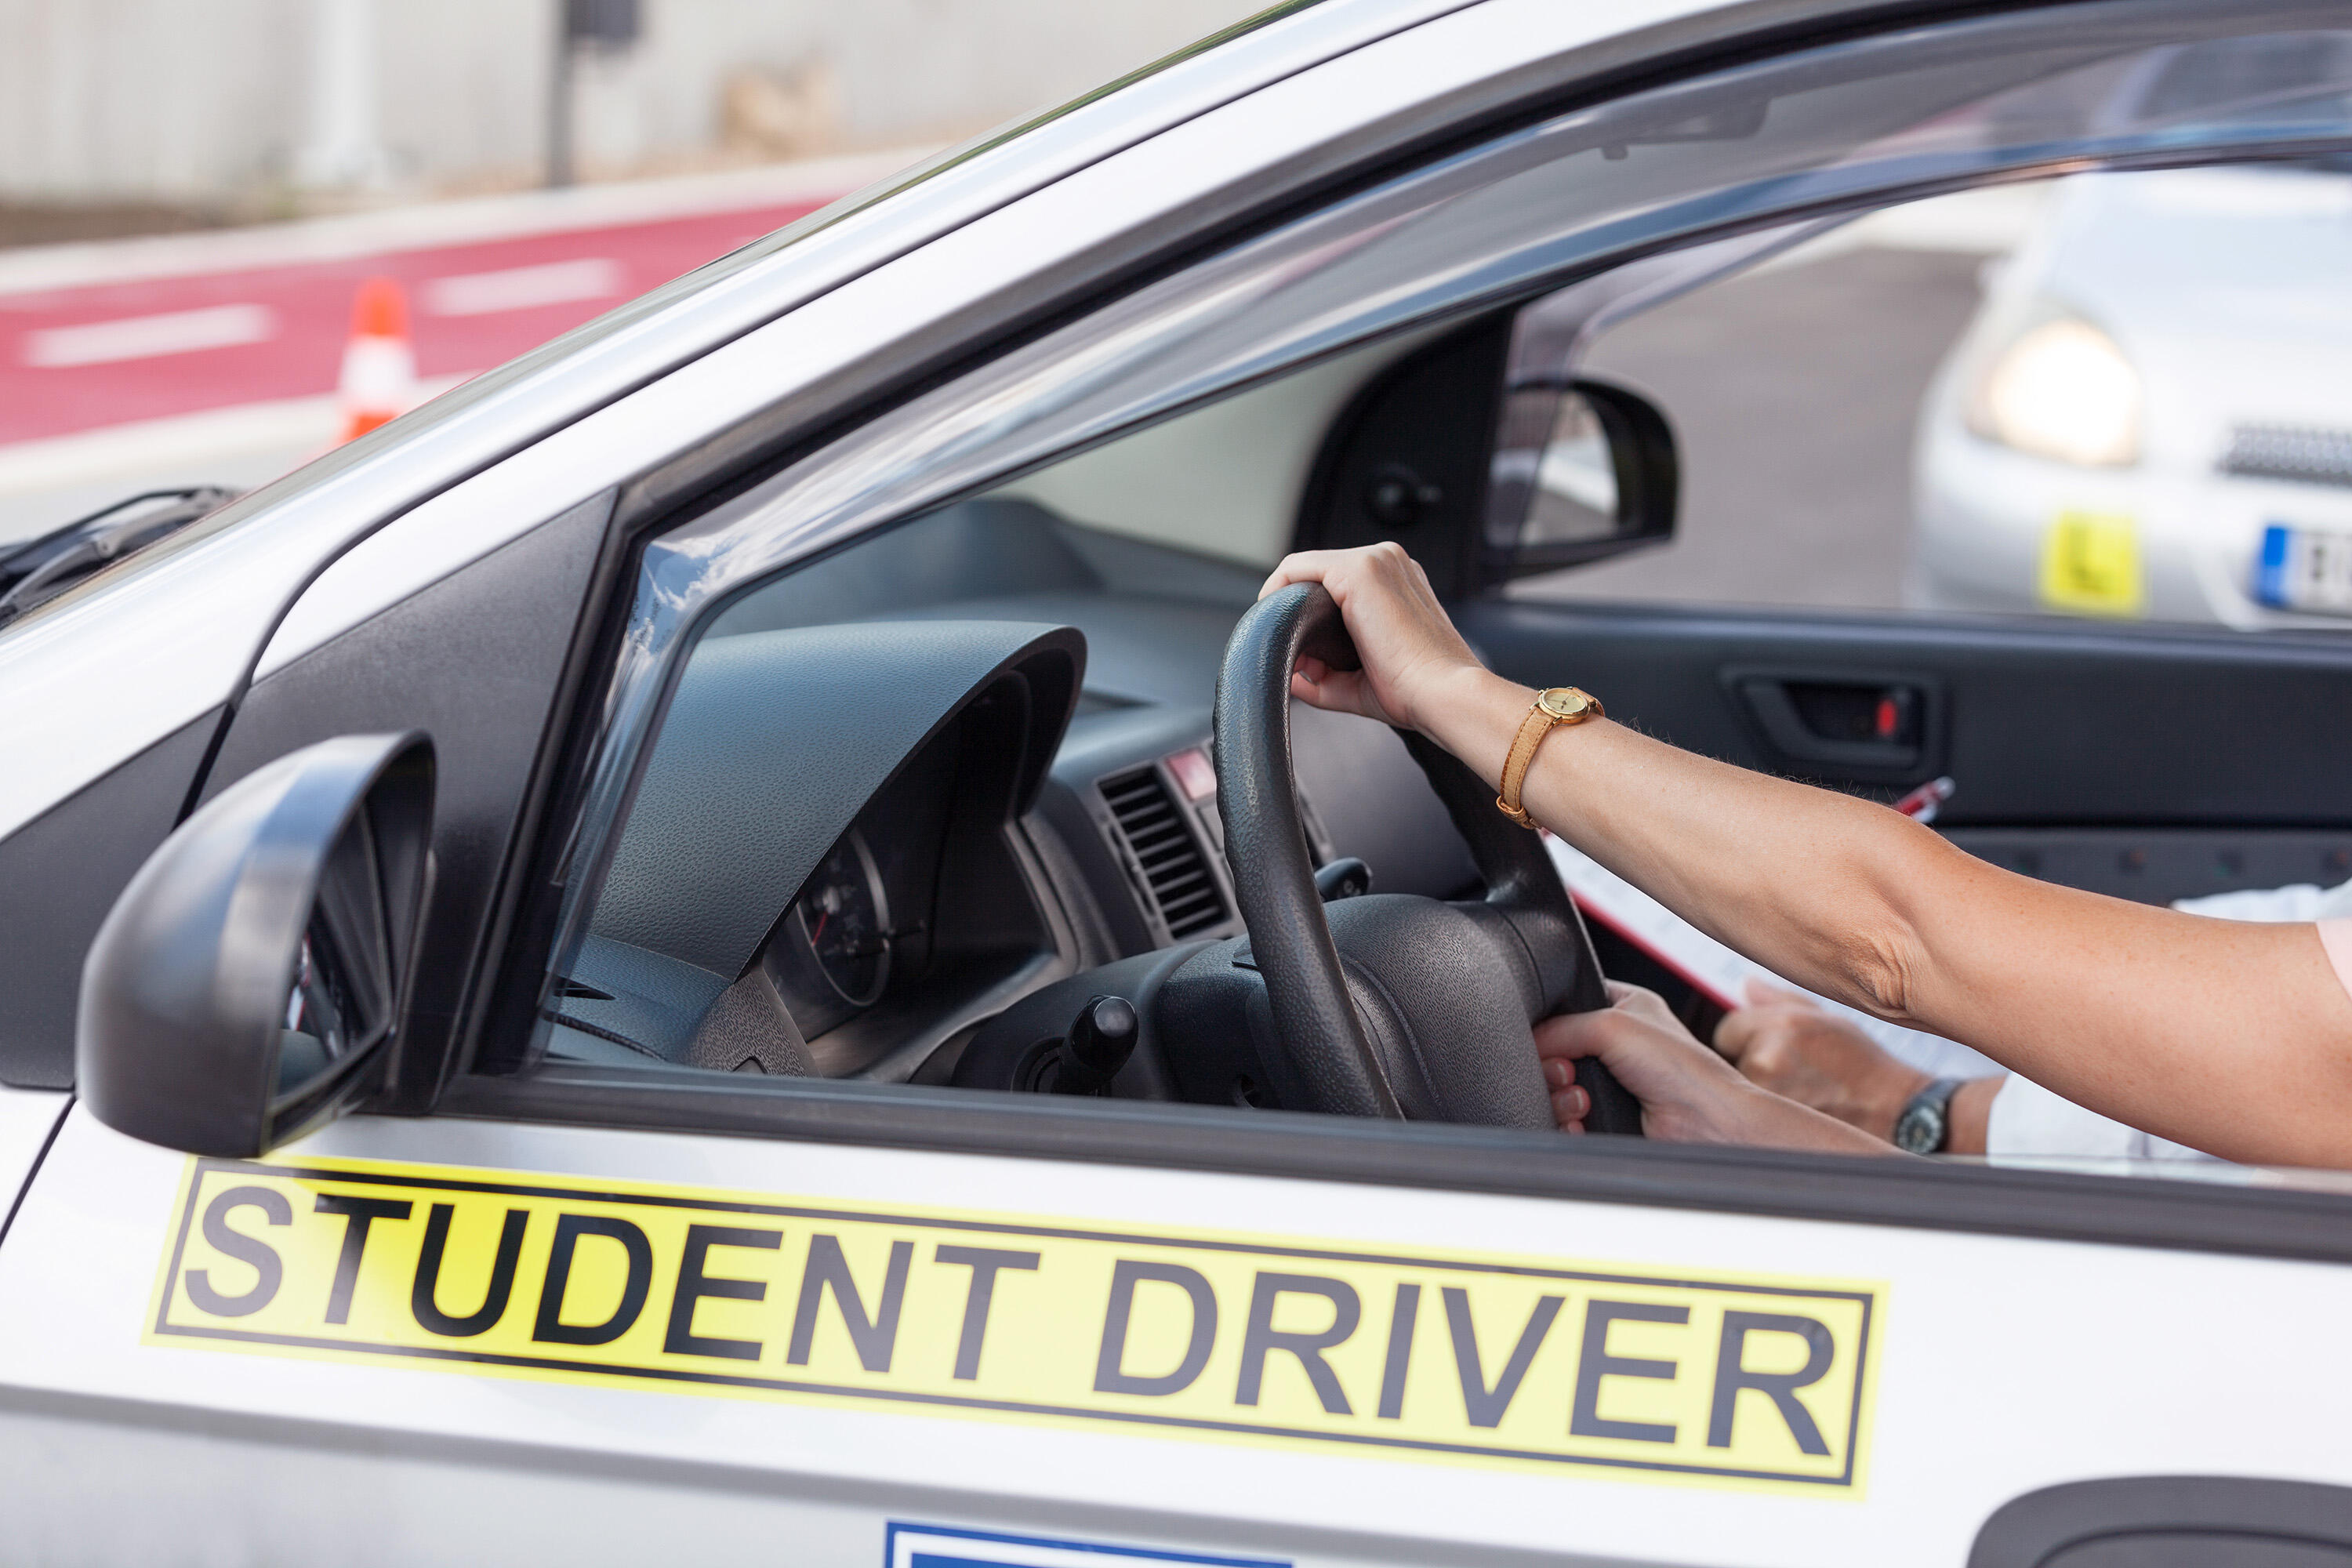 Student driver ROYALTY FREE